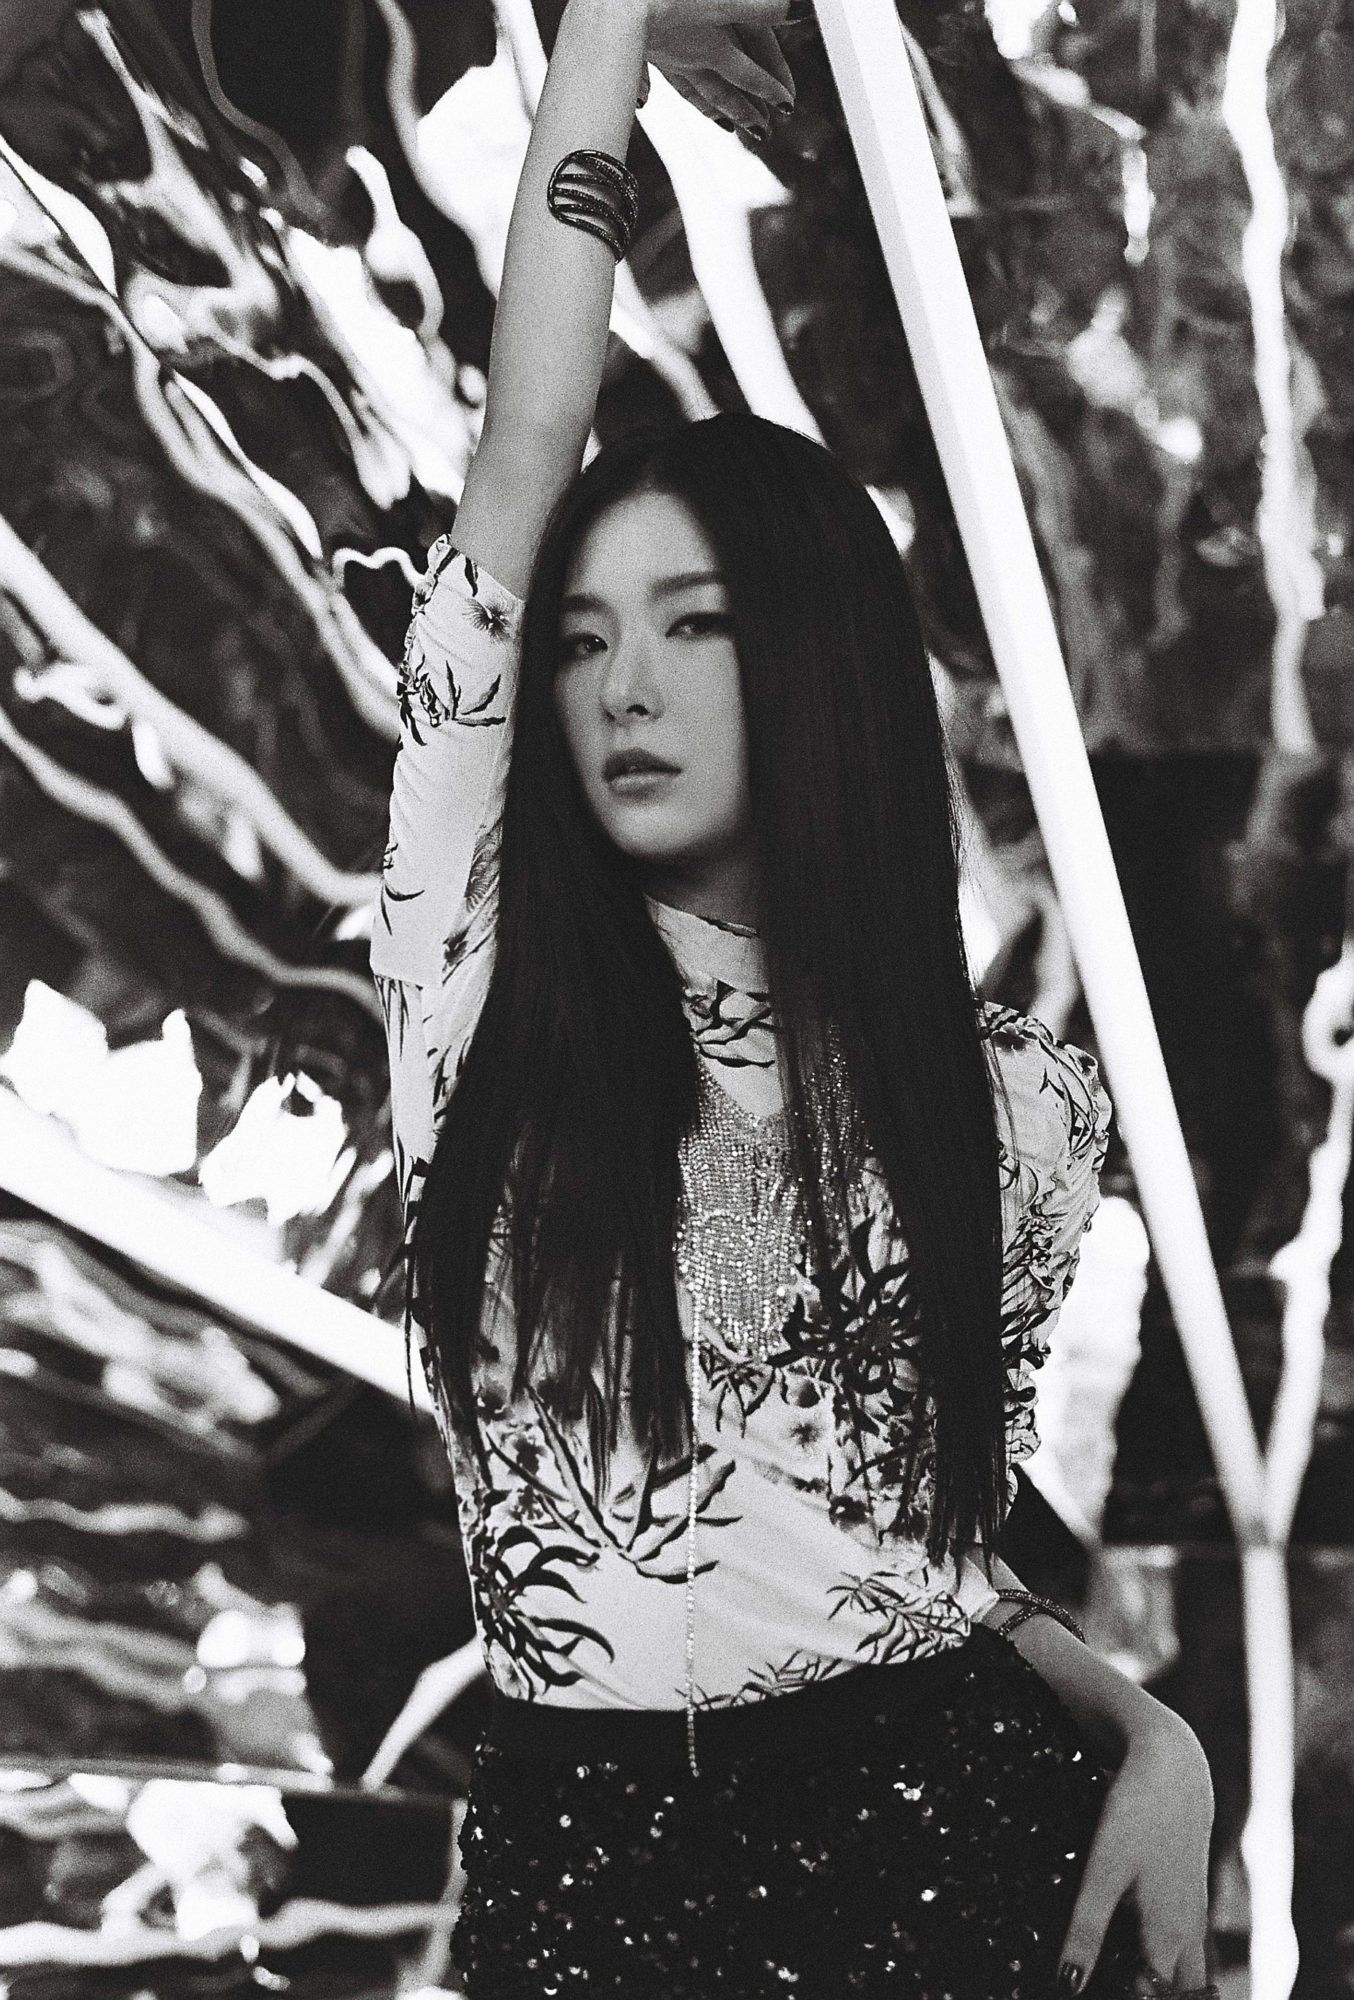 Seulgi - Red Velvet Irene Seulgi Monster Teaser 6 Group